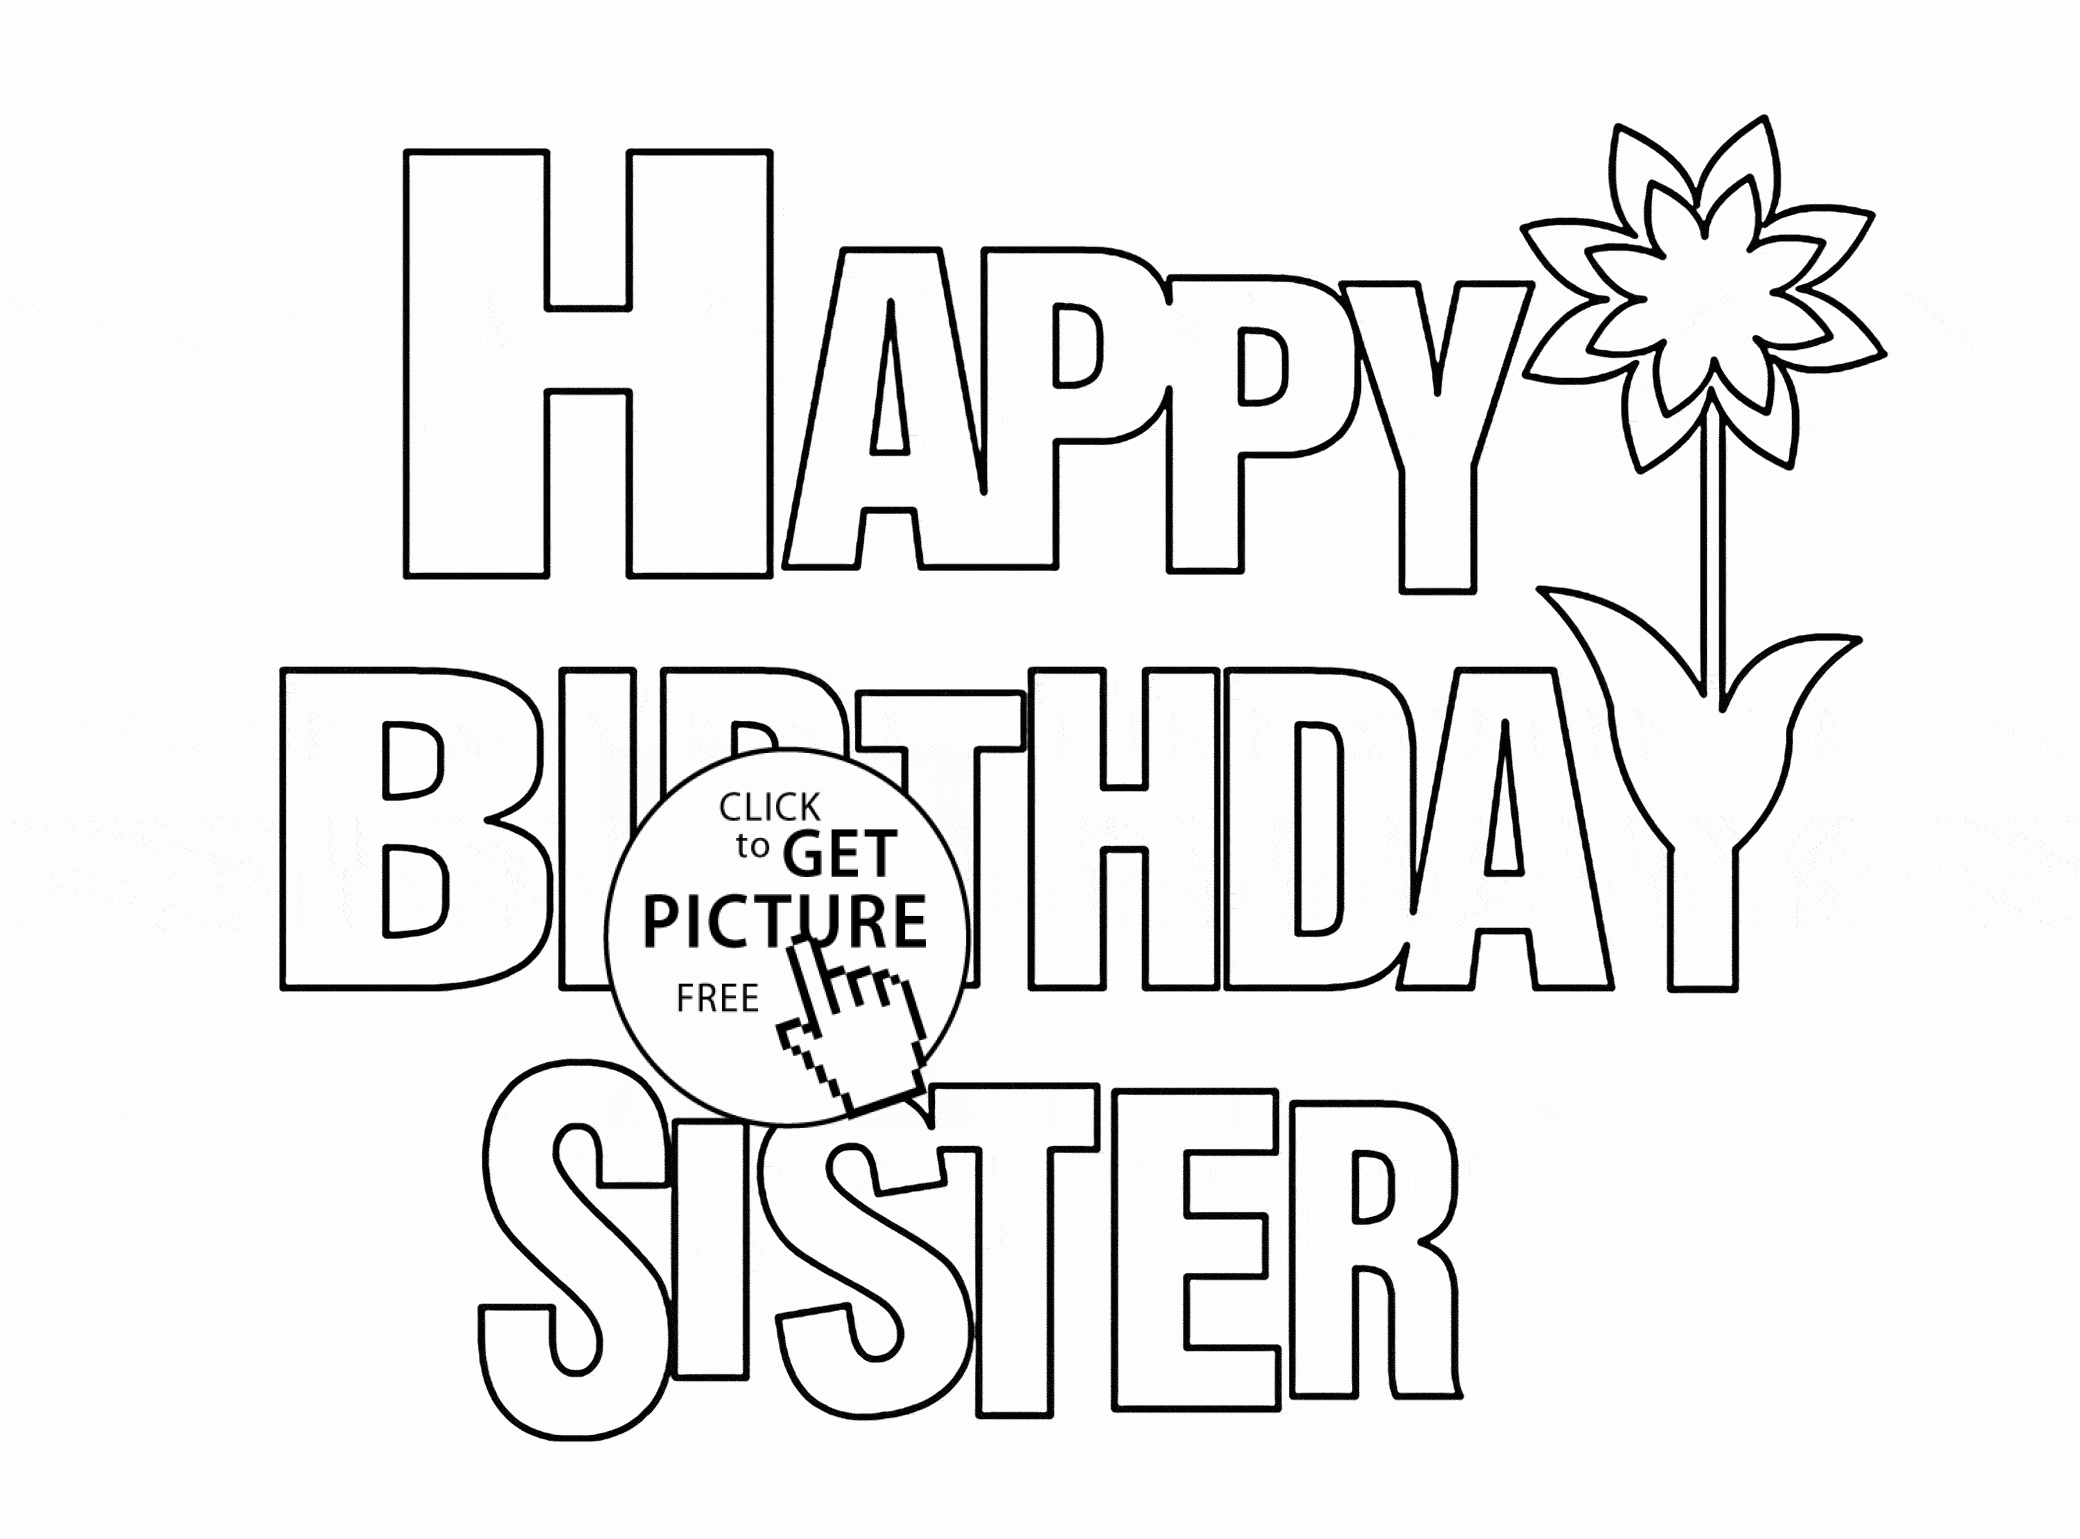 Happy Birthday Coloring Pages - Happy Birthday Sister Coloring Page for Kids Holiday